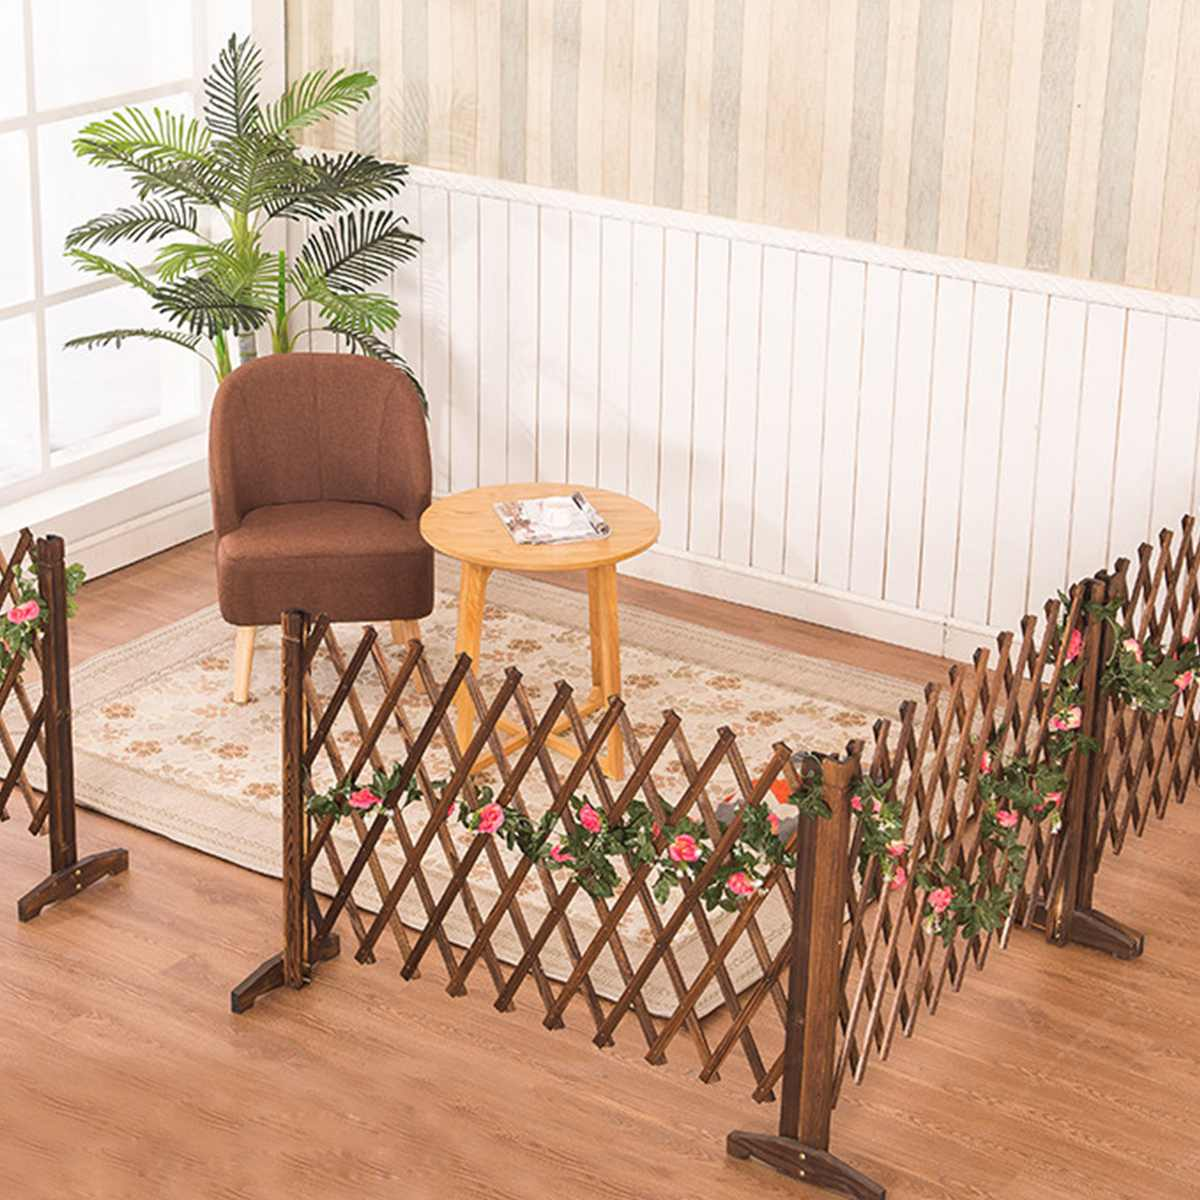 Protect Privacy Decoration Fence Extension Garden Building Fence Bucolic Mula Net Wood Carbonized Fir Home Restaurants Wall